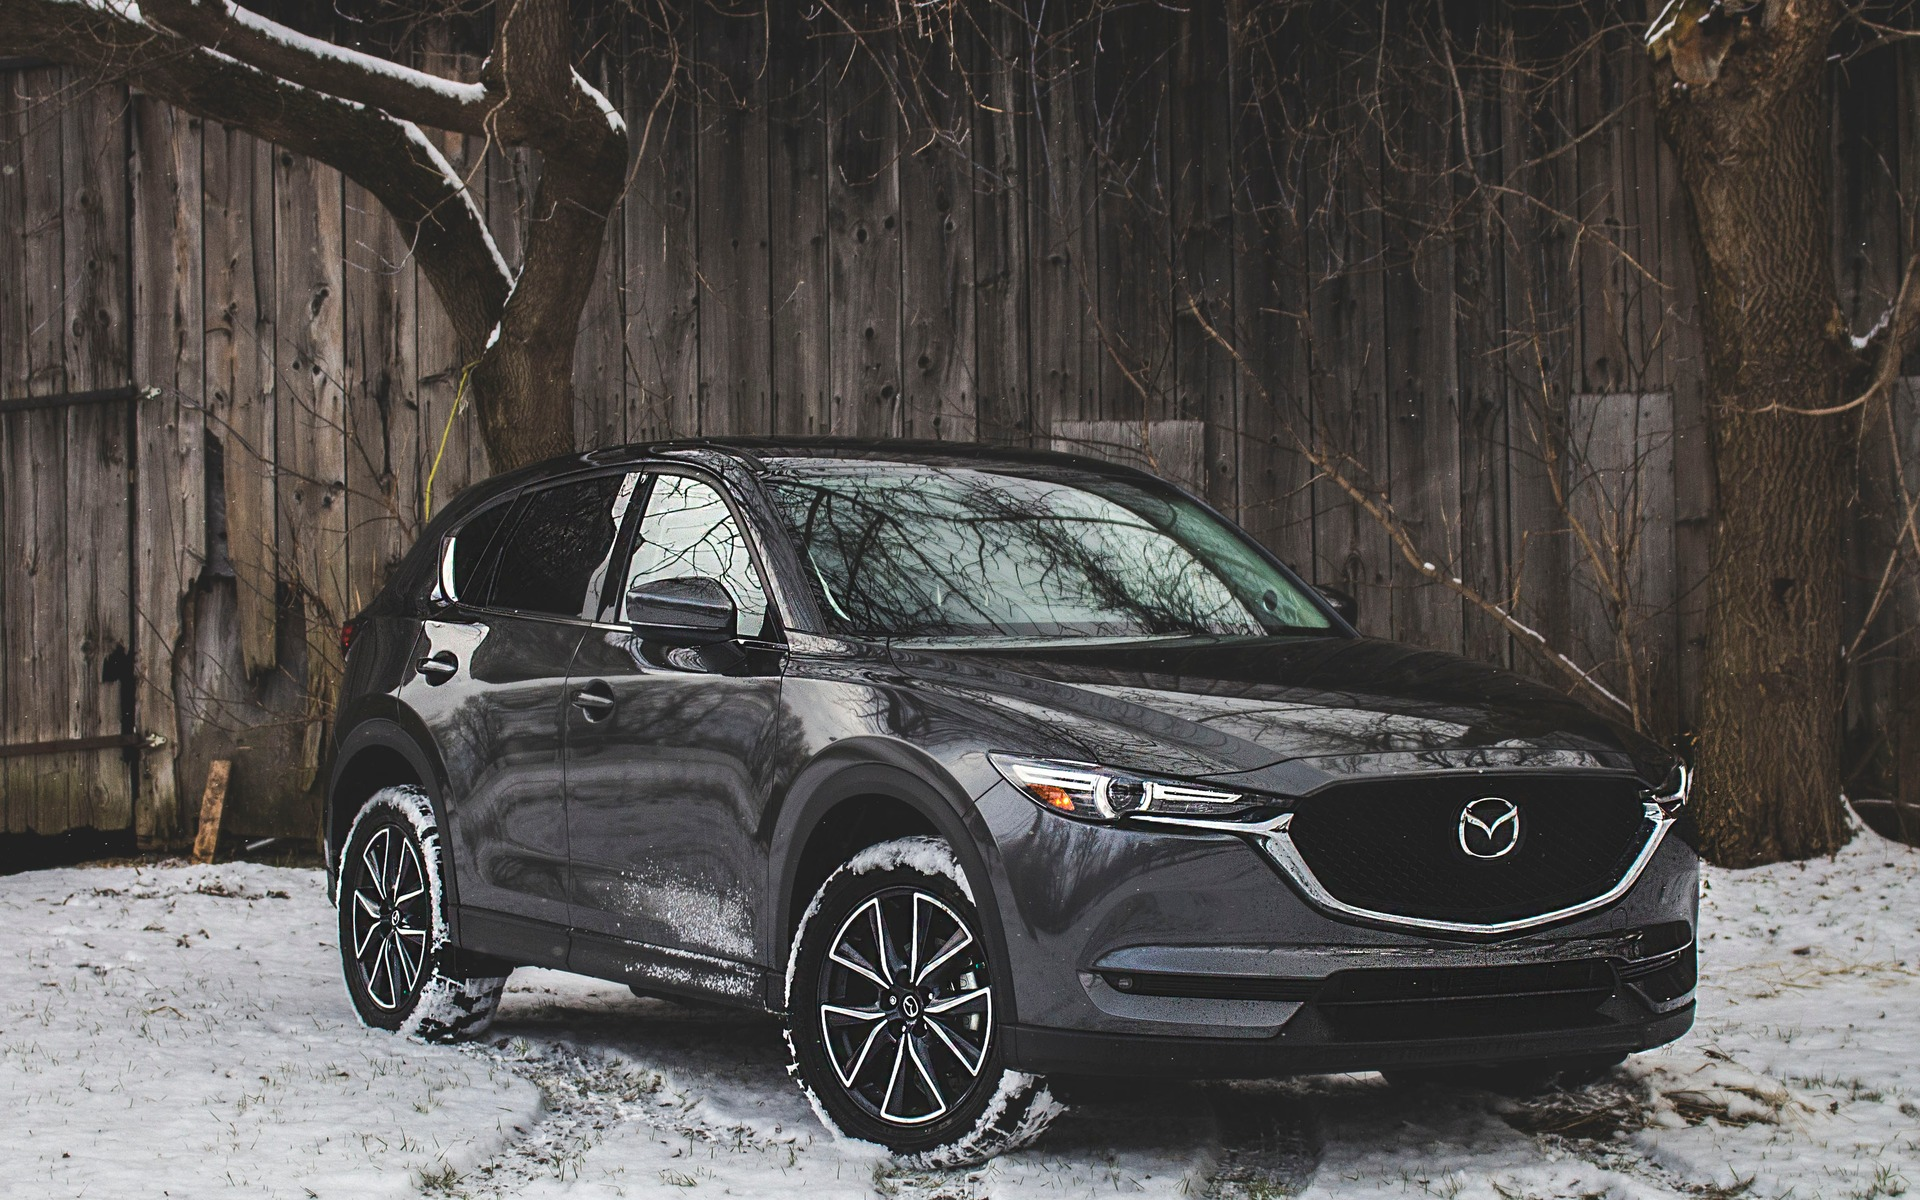 Apple Carplay And Android Auto Finally Available In Mazda Vehicles 5 6